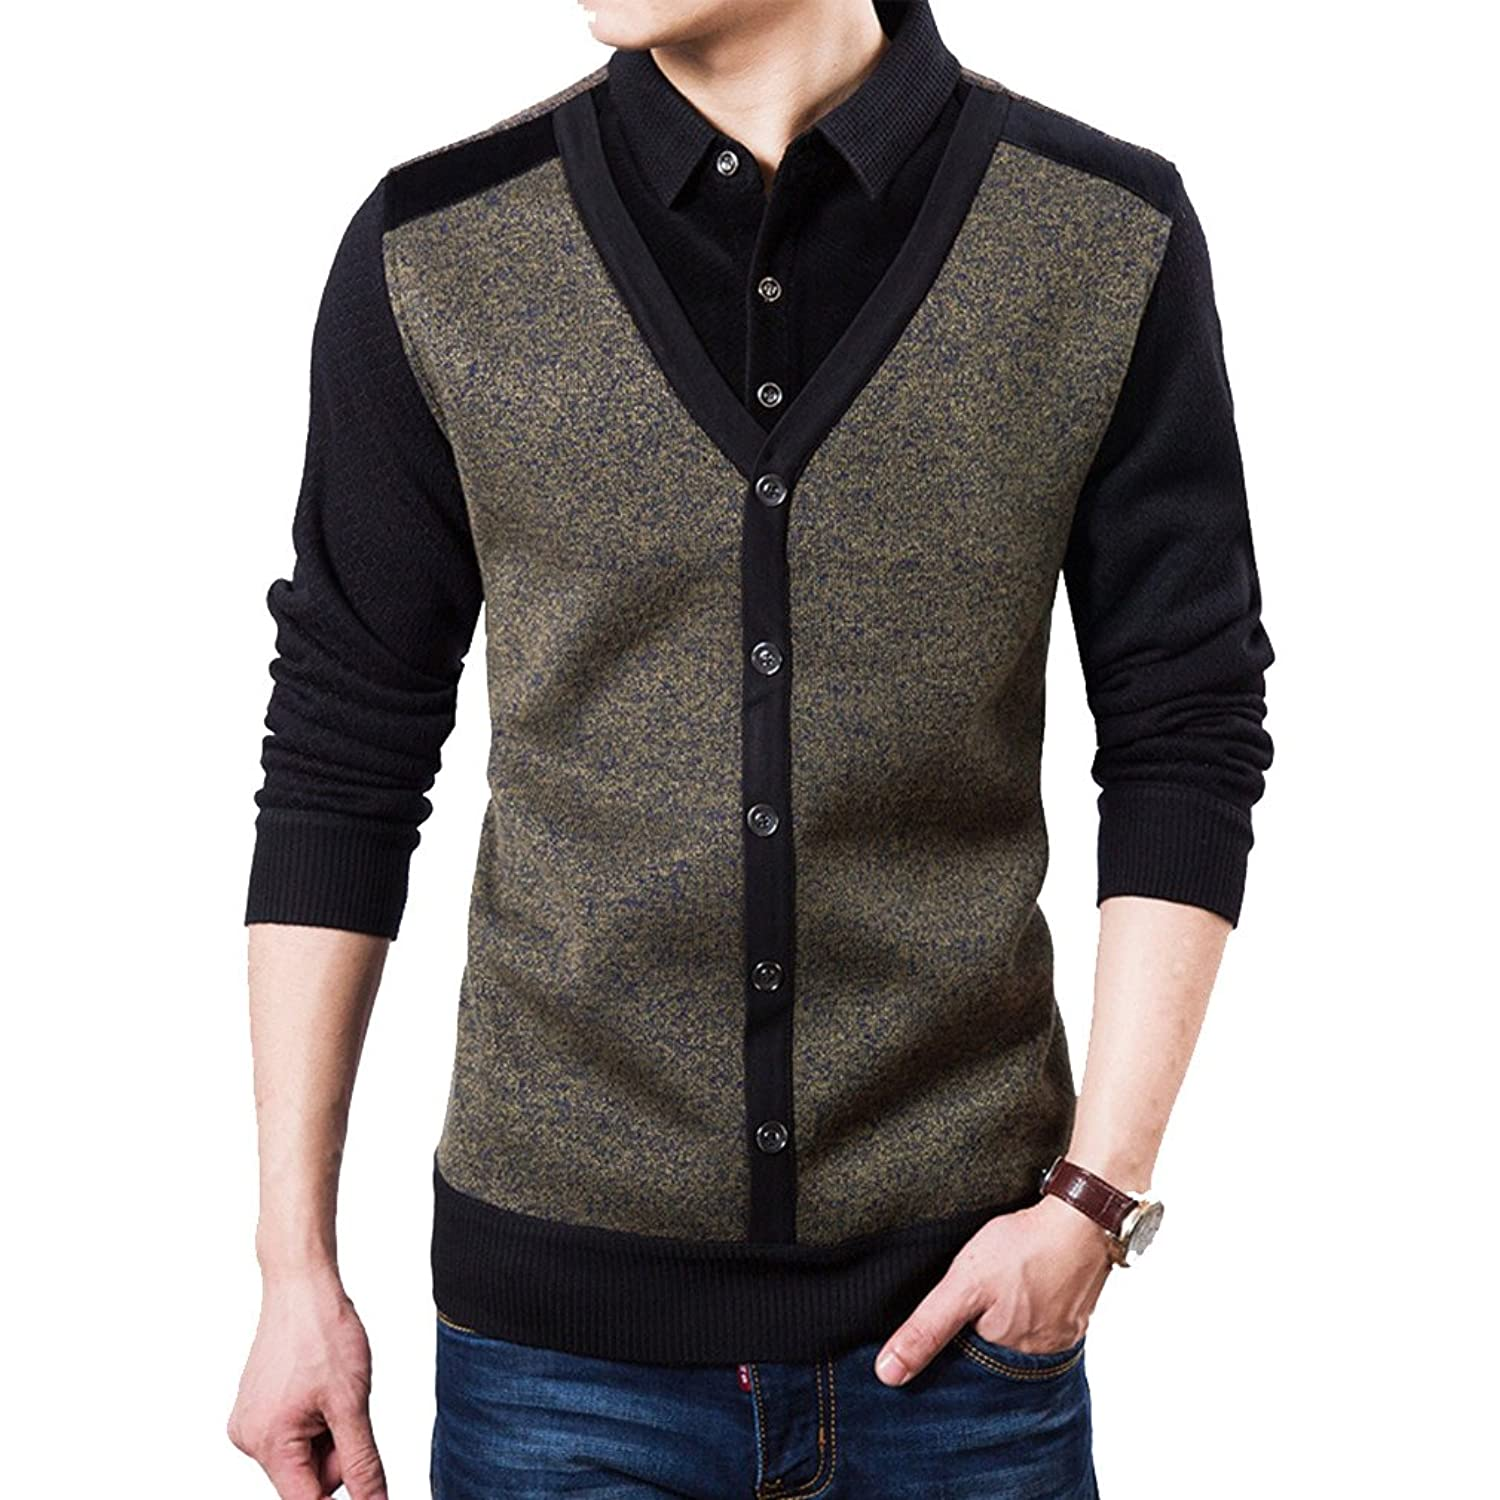 HCTOO Men's Knitted Thick Warm Woolen Cardigan Sweater with velvet